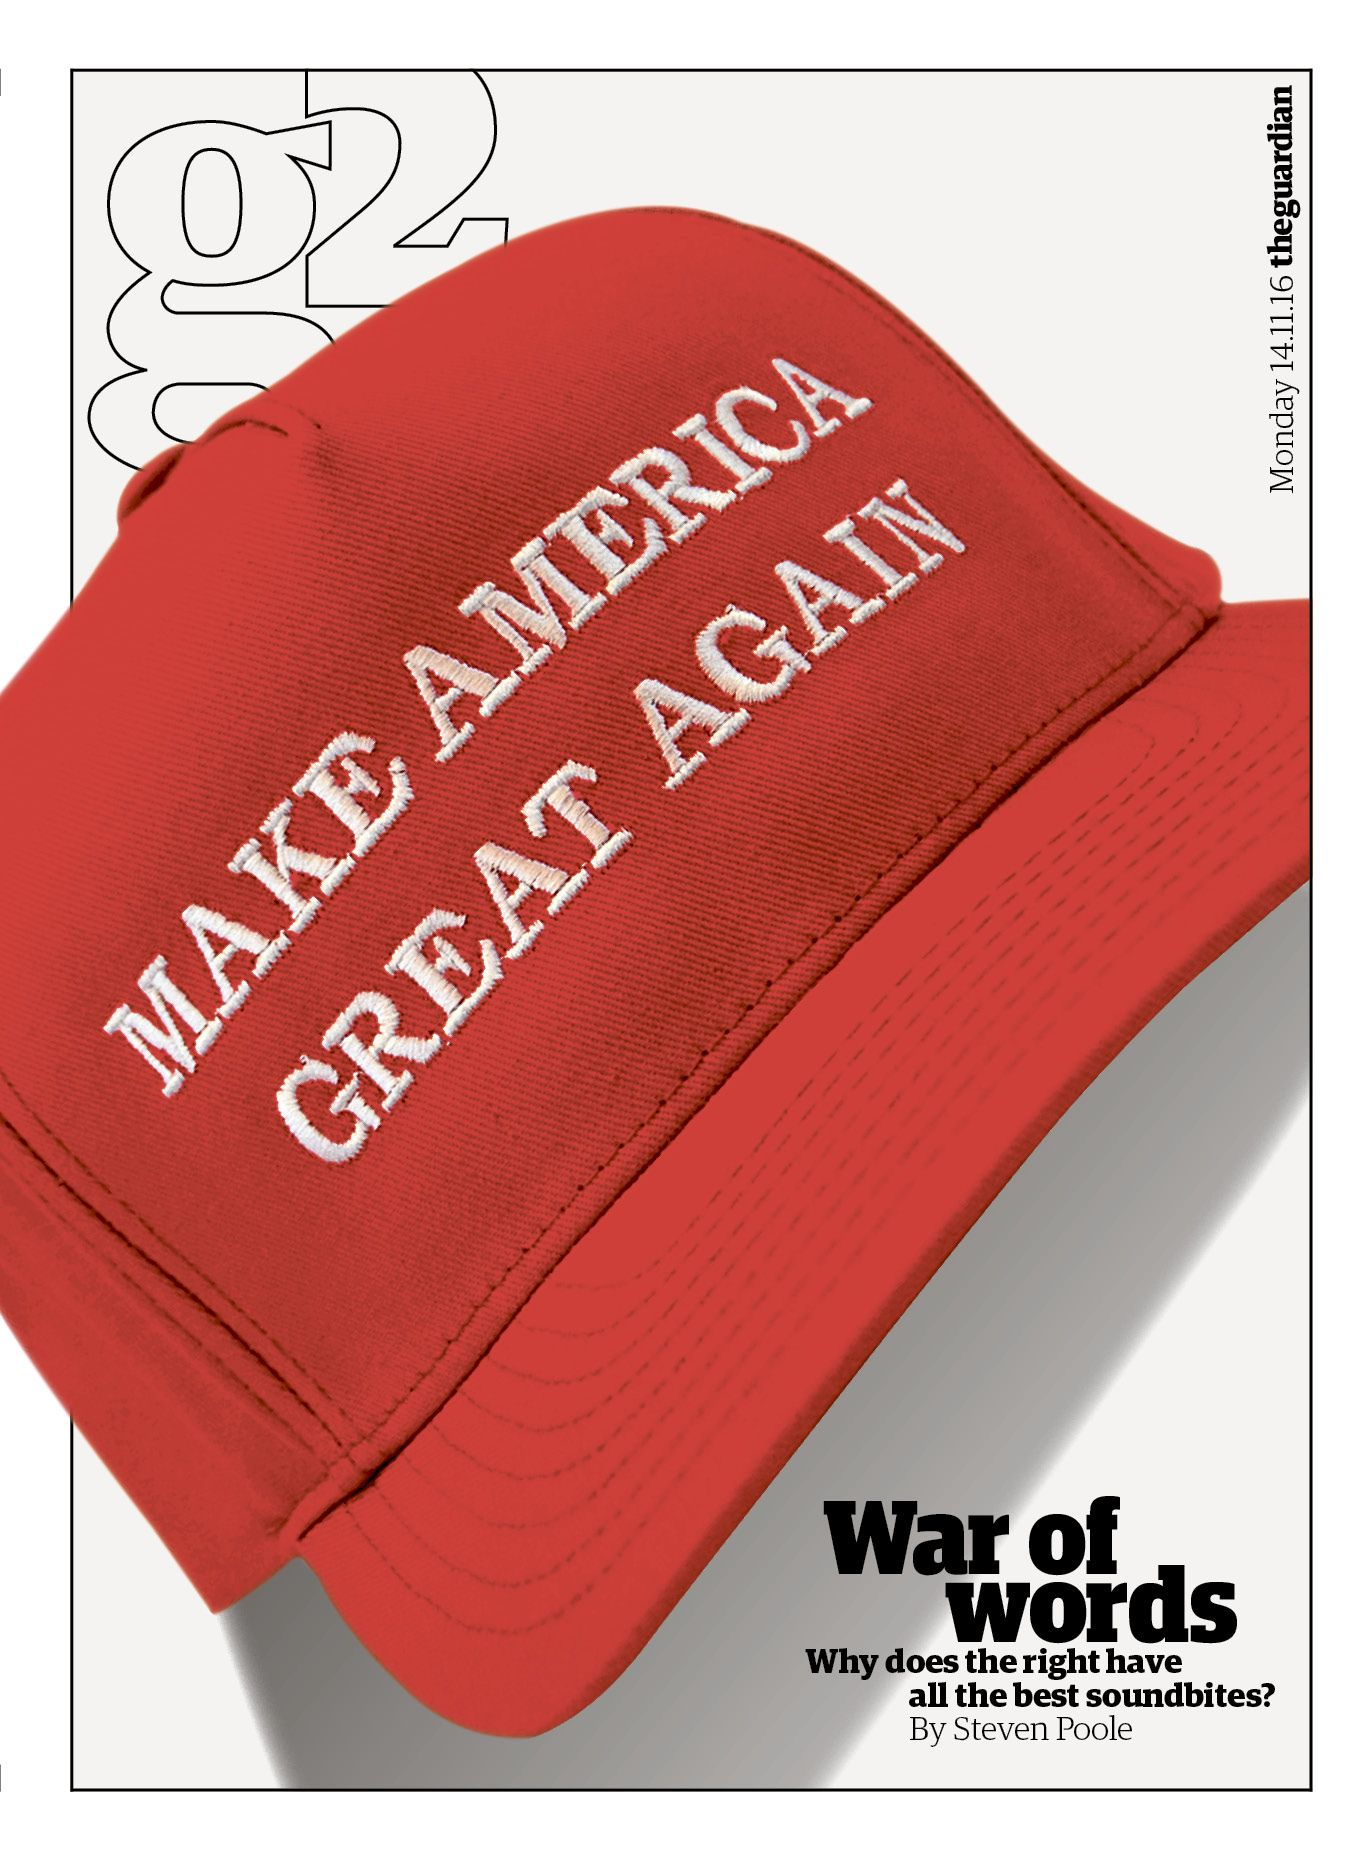 Guardian g2 cover: 'Make America Great Again' #editorialdesign #newspaperdesign #graphicdesign #design #theguardian